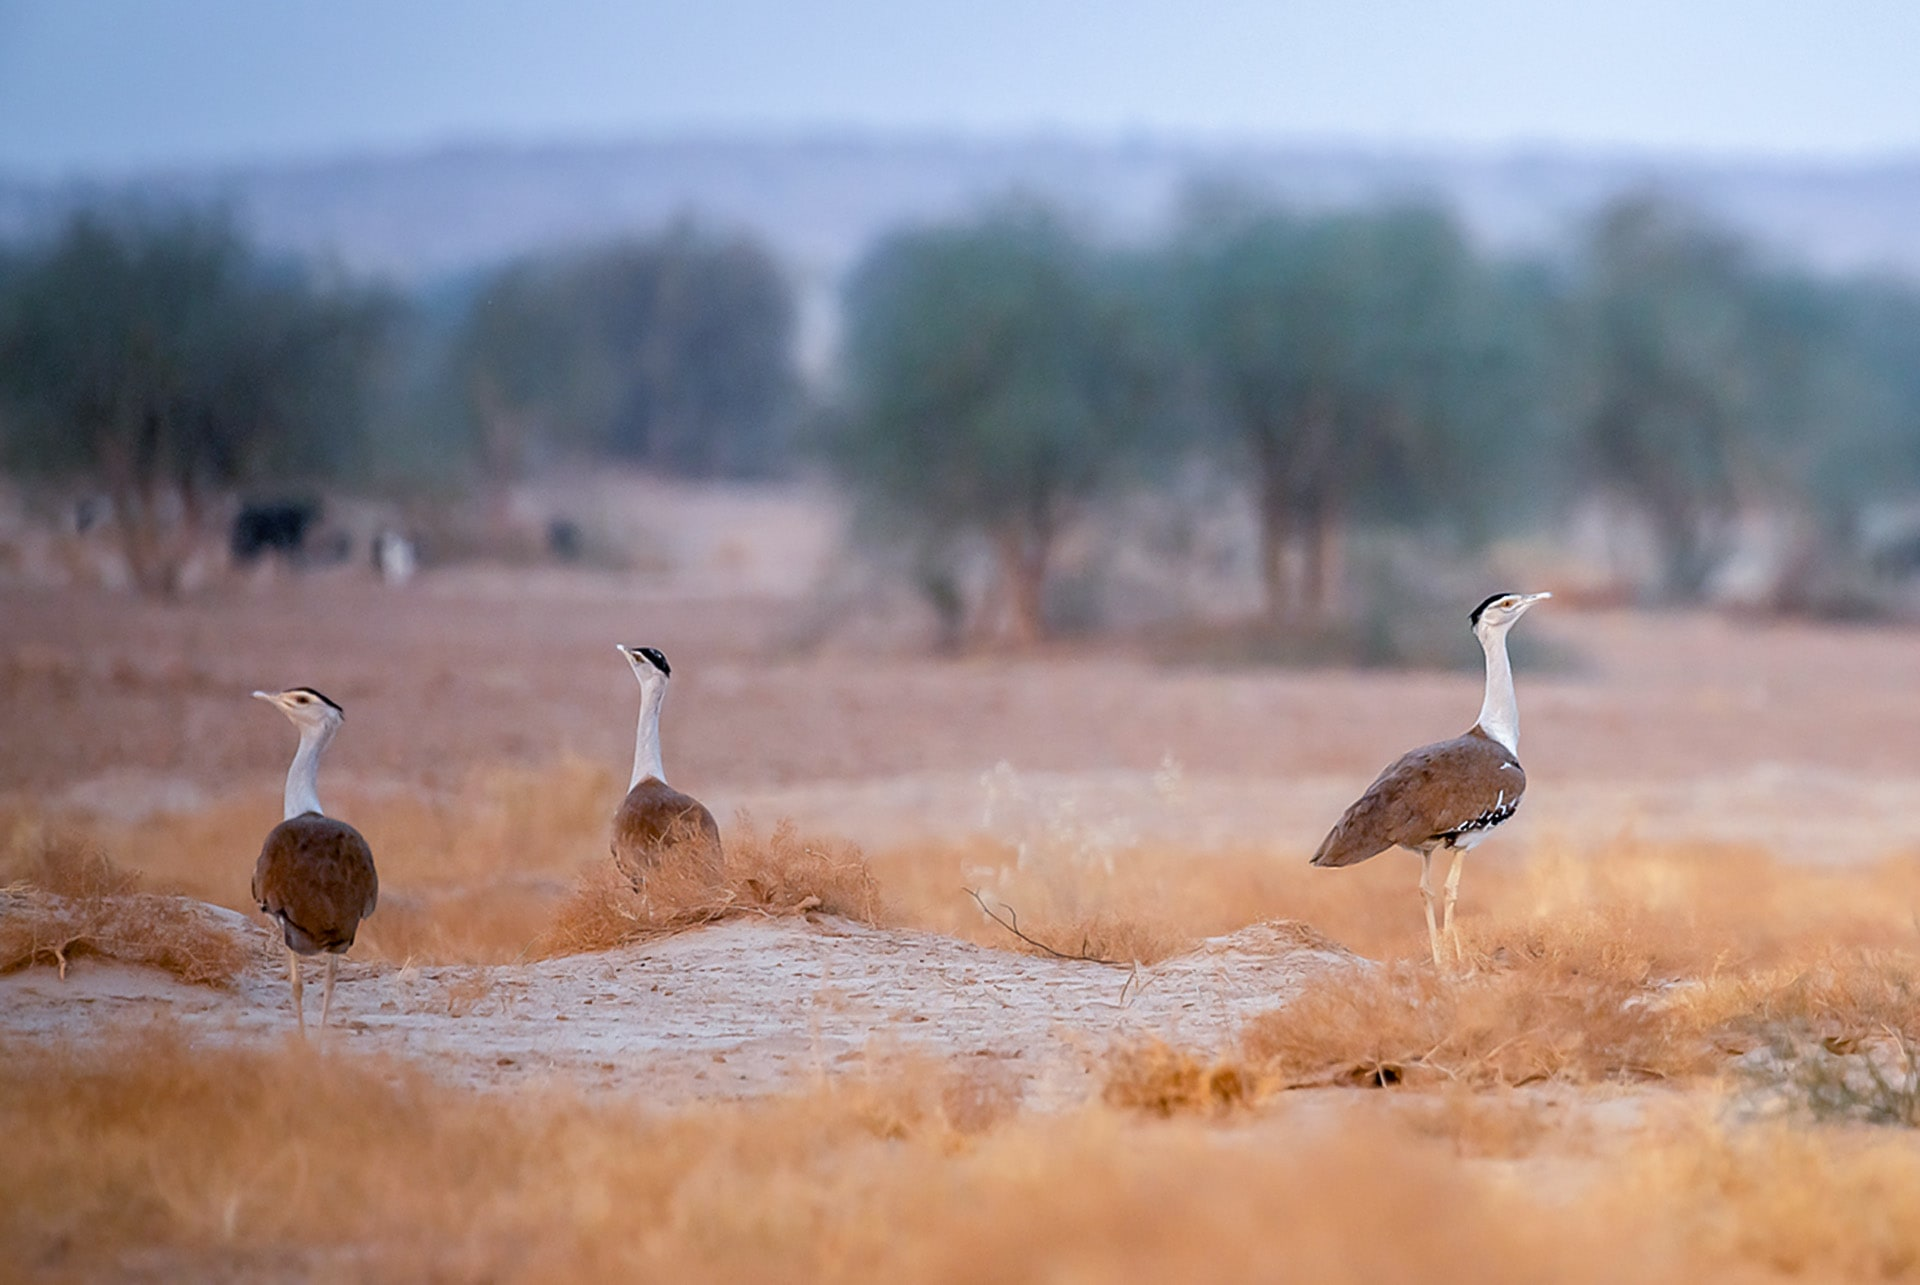 The park is one of the last strongholds of the great Indian bustard, which needs very specific arid and semi-arid habitats with scrub and tall grass to survive. 